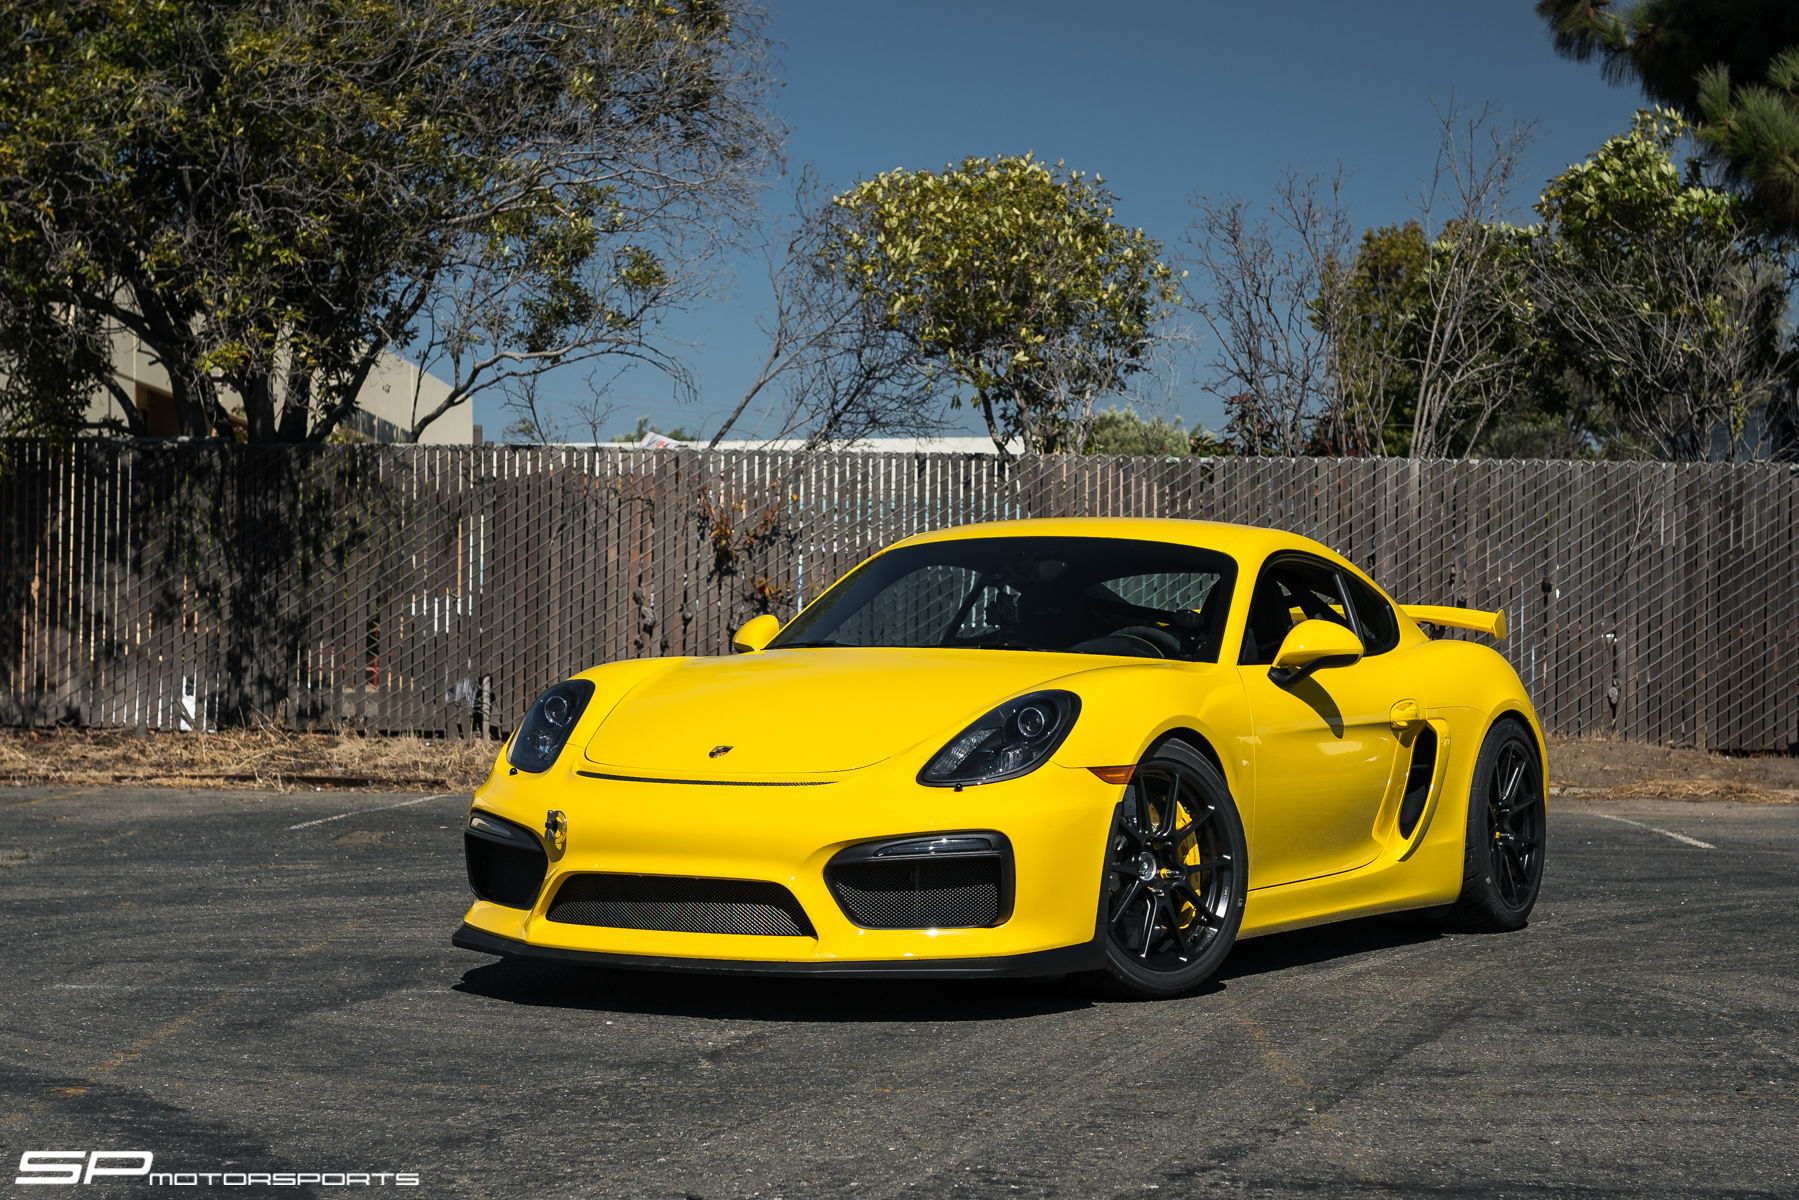 2016 Porsche Cayman | SP Motorsports' Porsche Cayman GT4 on Forgeline One Piece Forged Monoblock GS1R Wheels